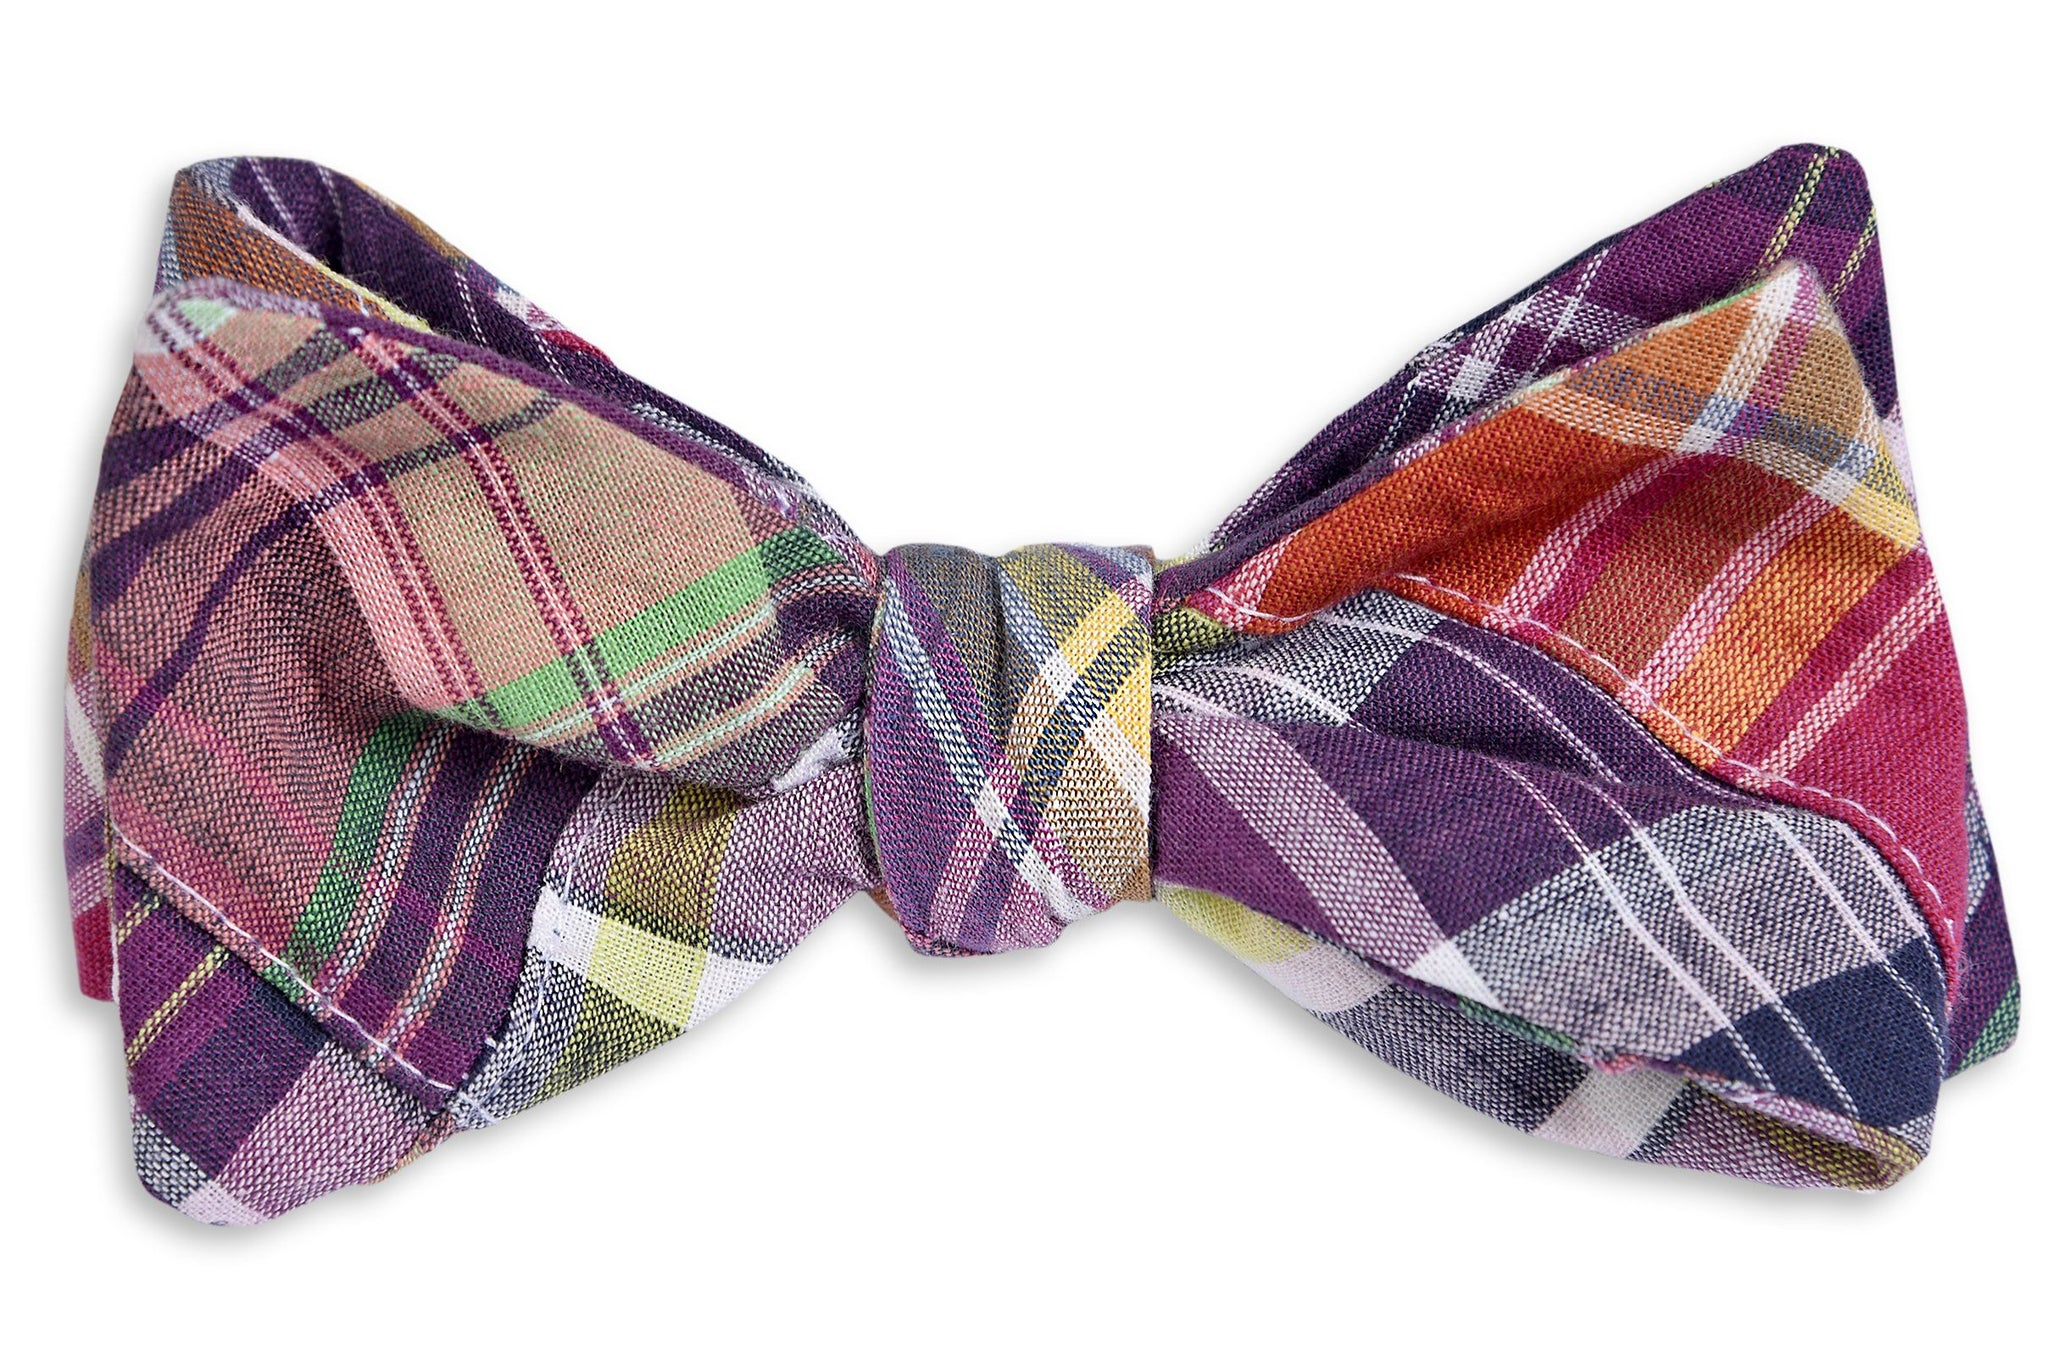 cf47815d9165 High Cotton | Hand Crafted Bow Ties, Cummerbund Sets & Accessories